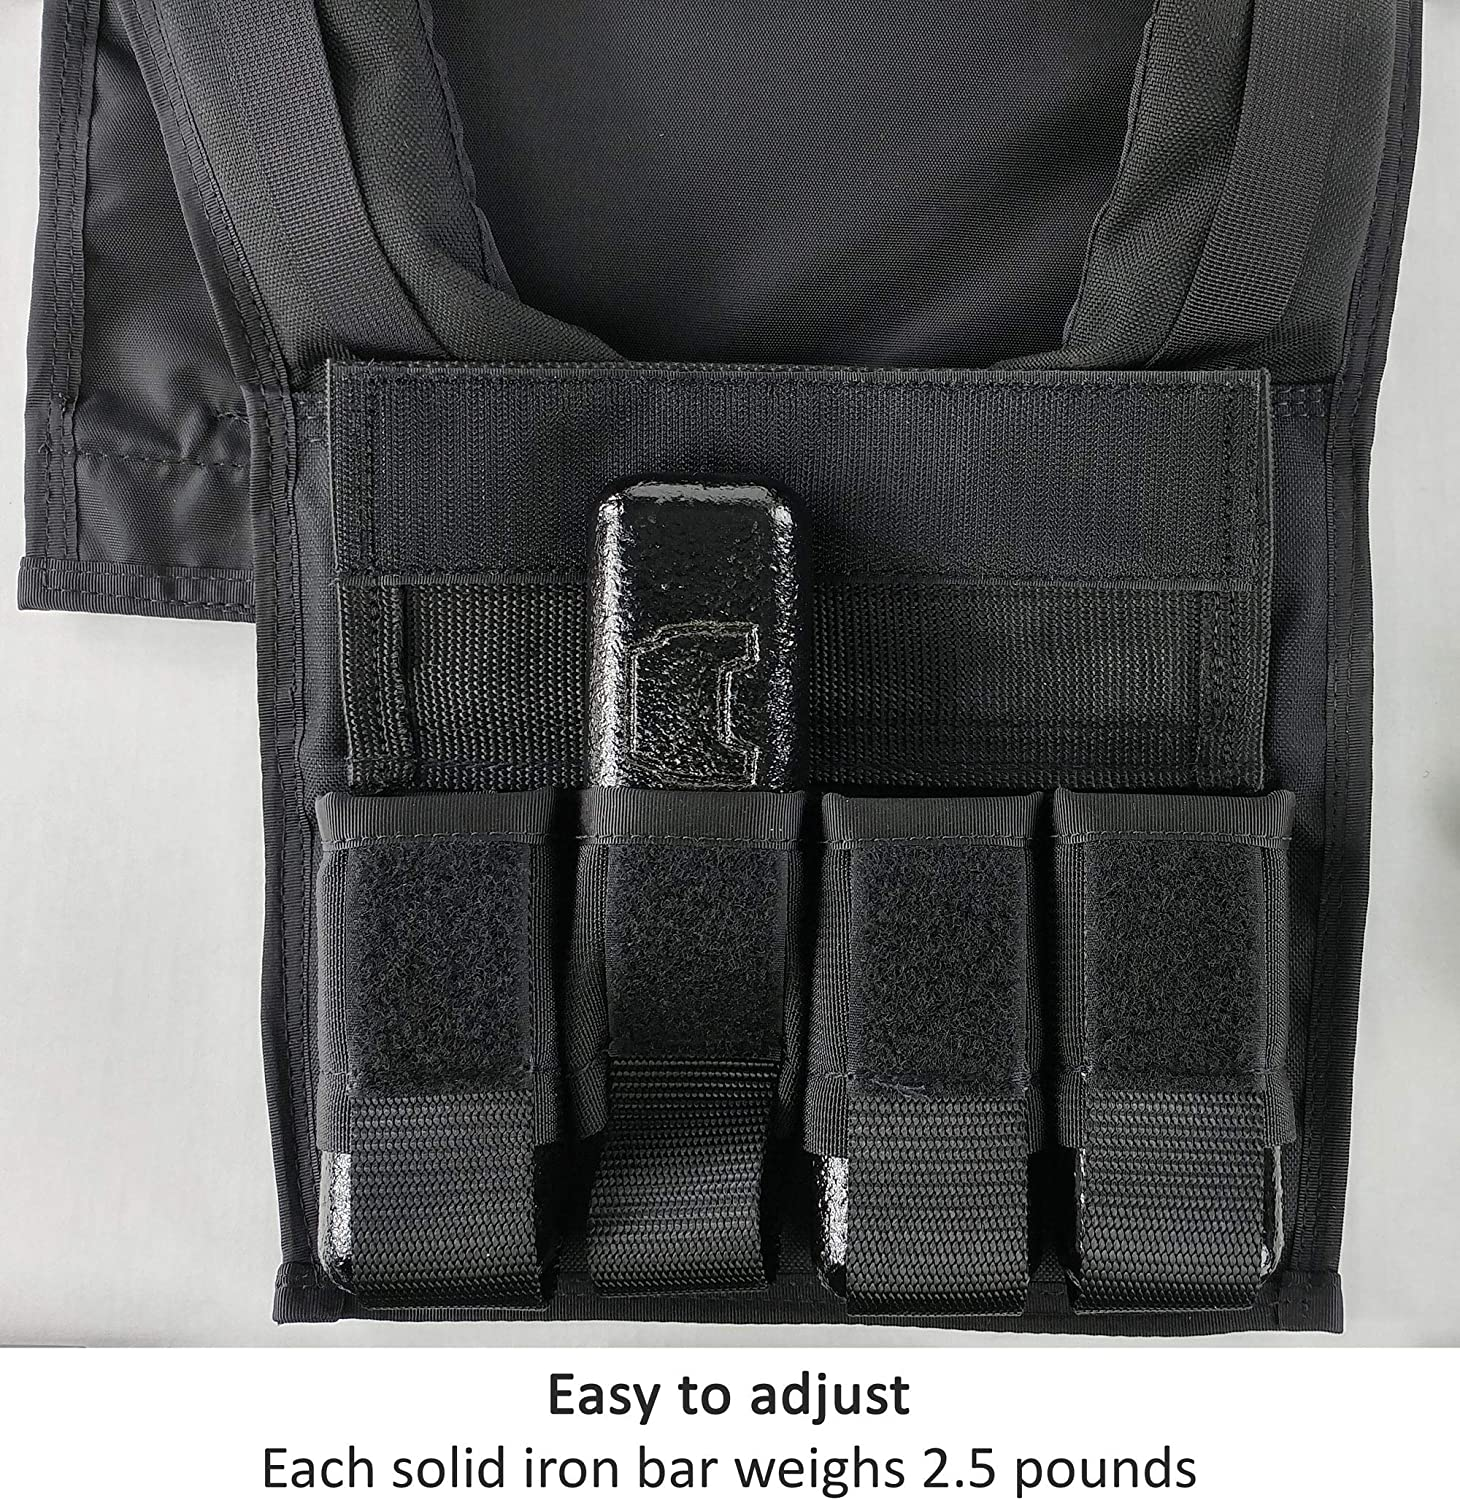 Box 20 Lb Super Short Weight Vest Made in USA Built for Gym Weight Loss Training